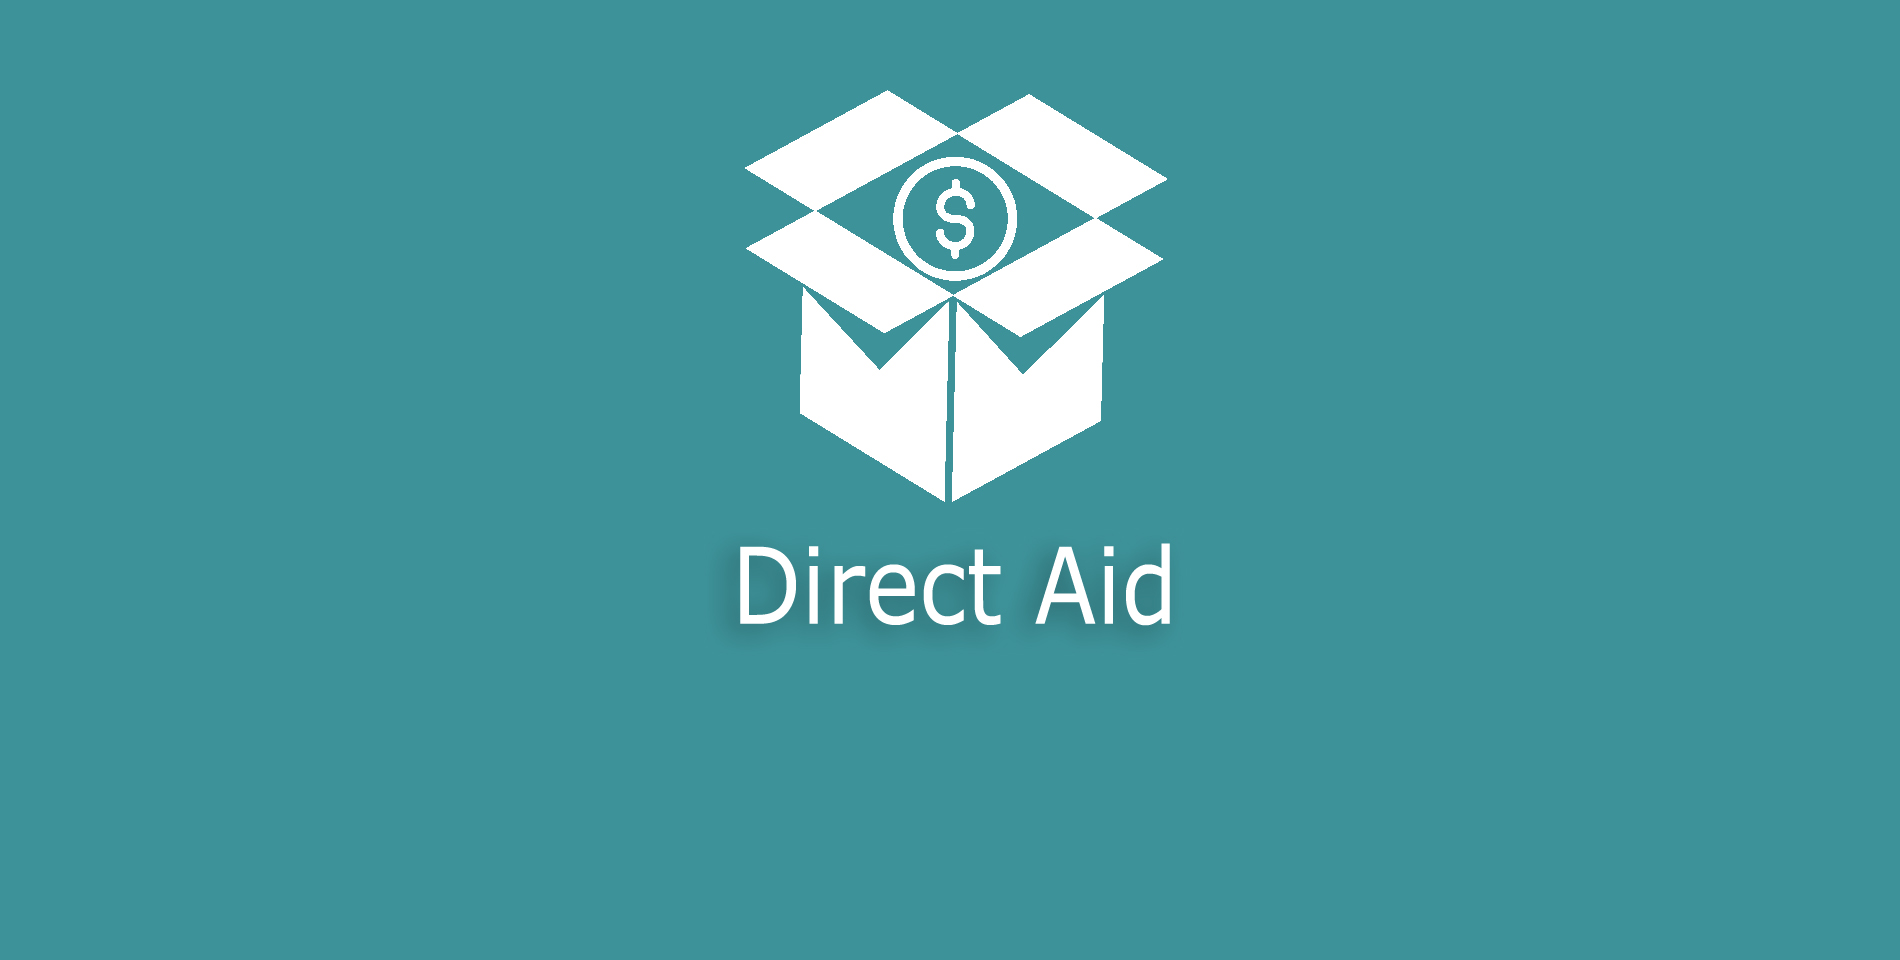 Direct Aid